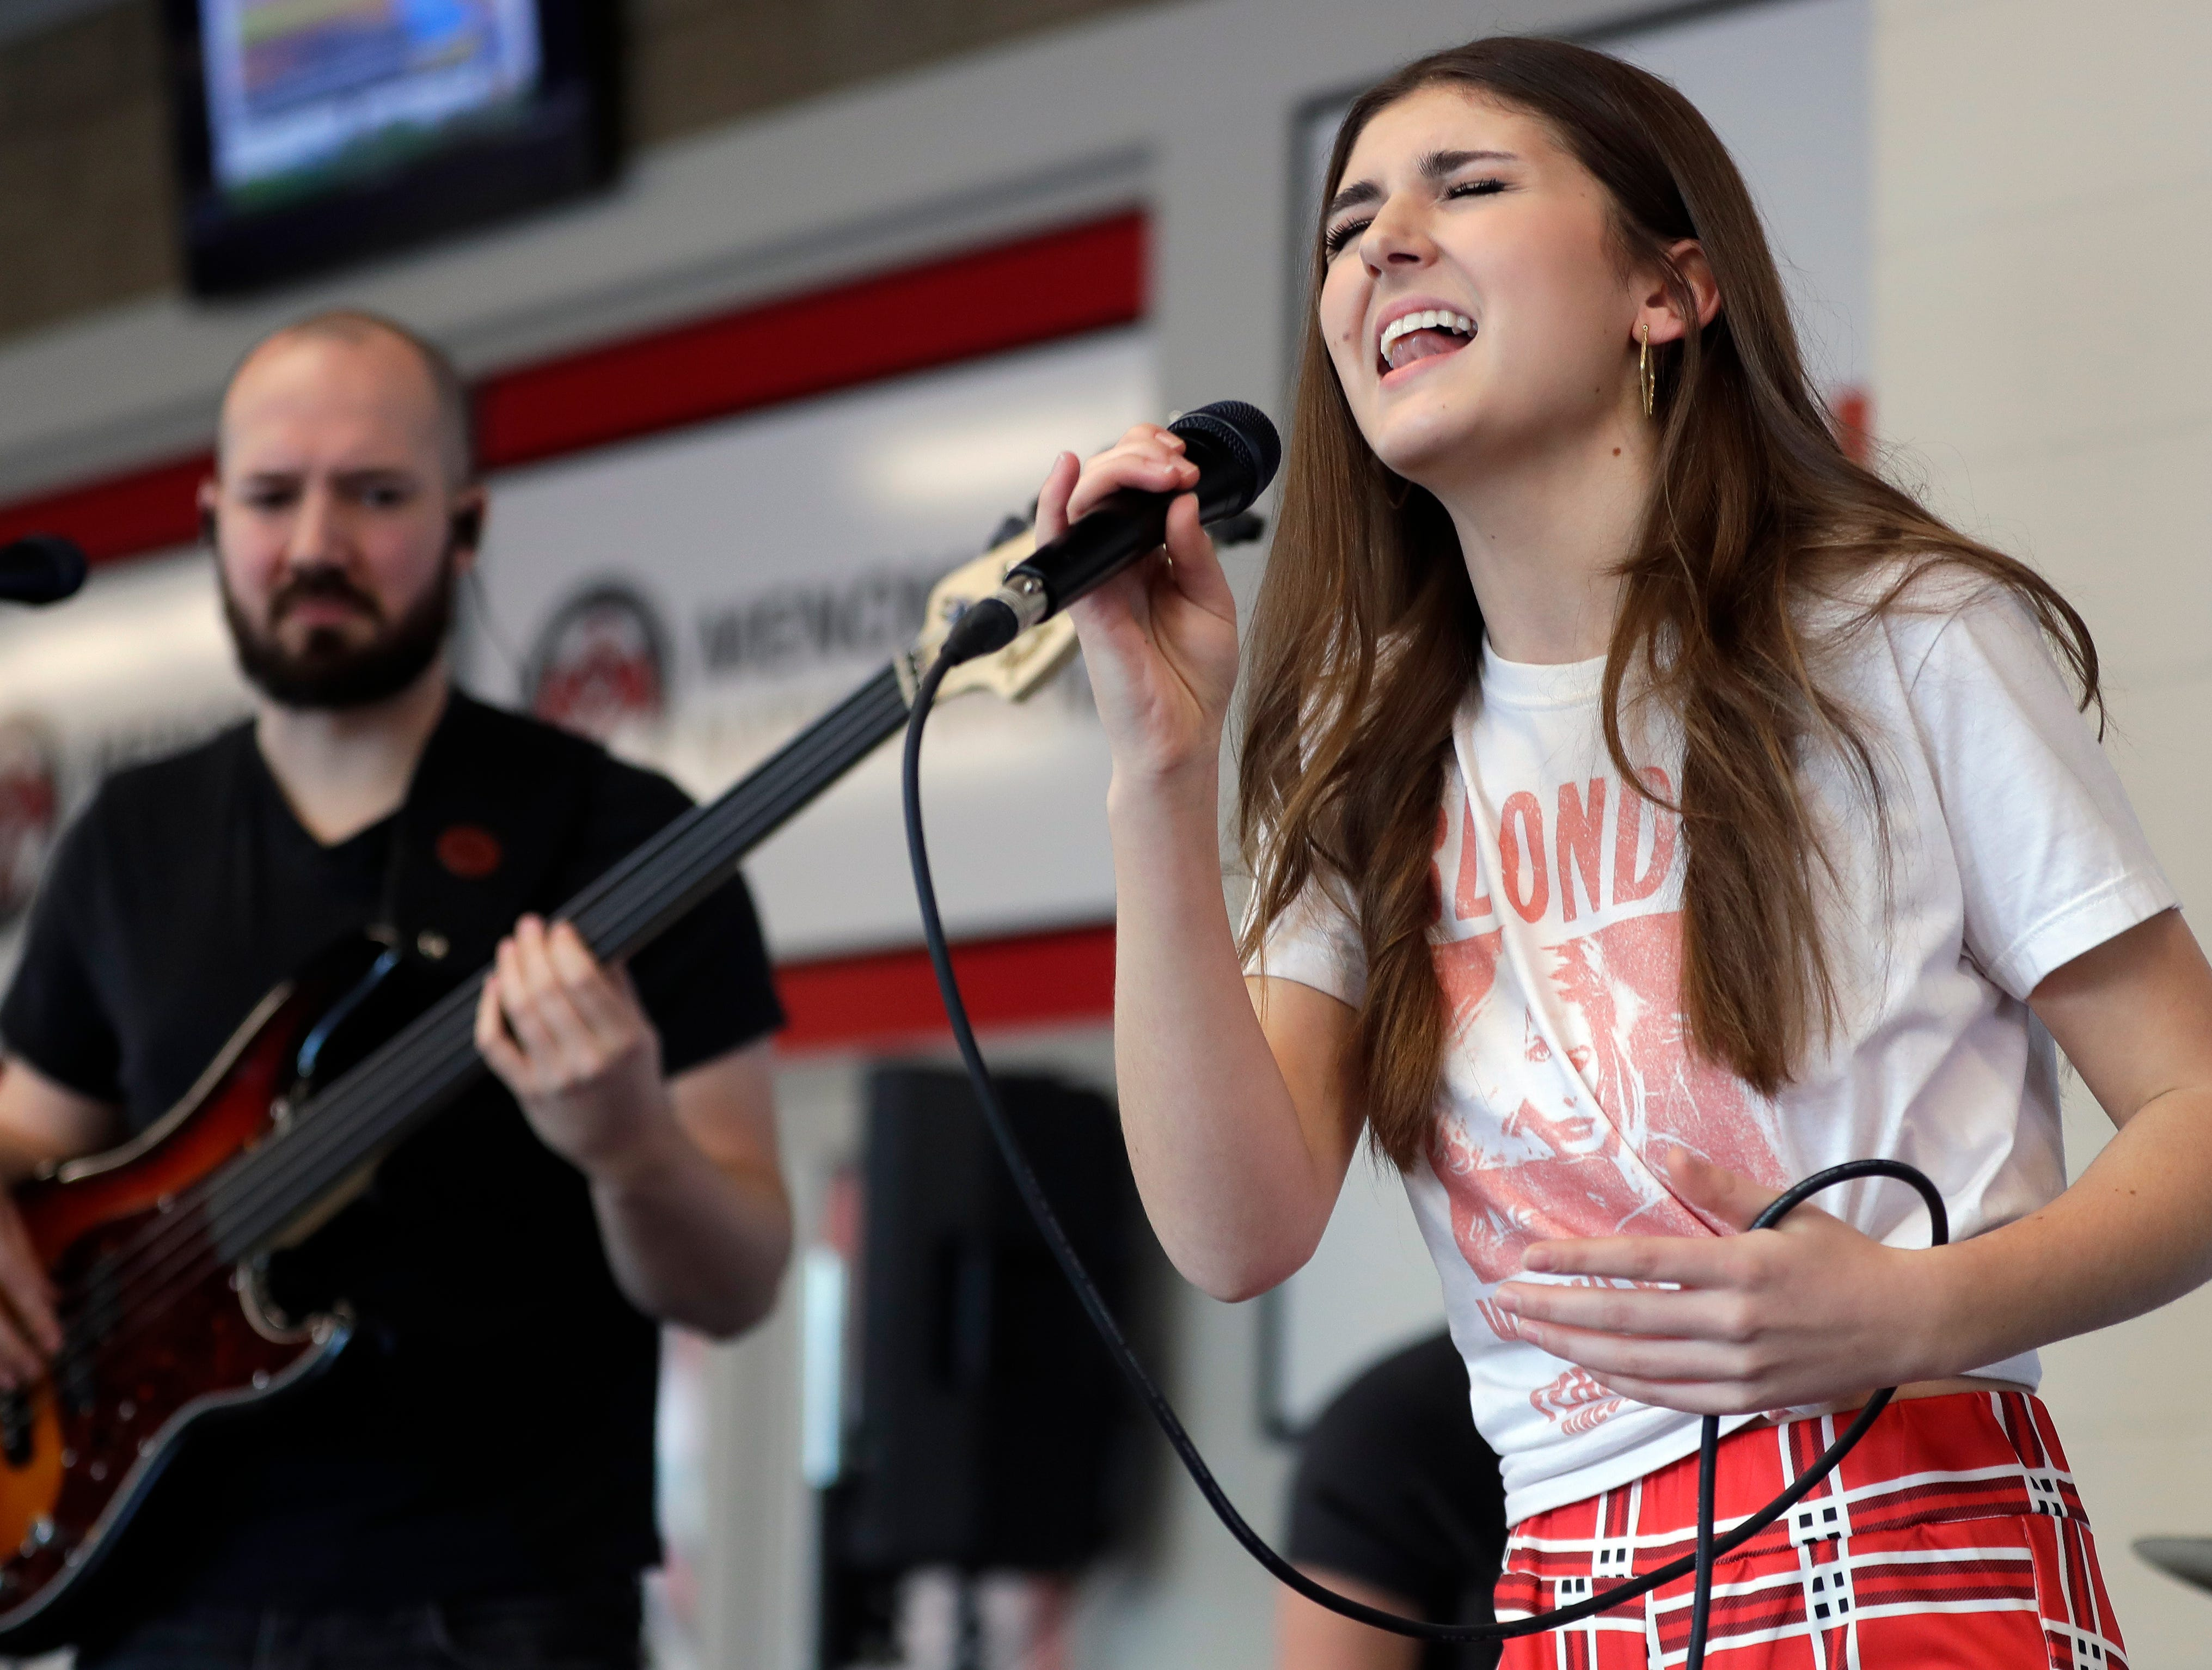 """Franki Moscato rehearses for her suicide awareness event Feb. 28, 2019, at the Menominee Nation Arena in Oshkosh, Wis. that also celebrated her 100th show as a singer and featured the premiere of her """"I Will Rise"""" music video. Sarah Kloepping/USA TODAY NETWORK-Wisconsin"""